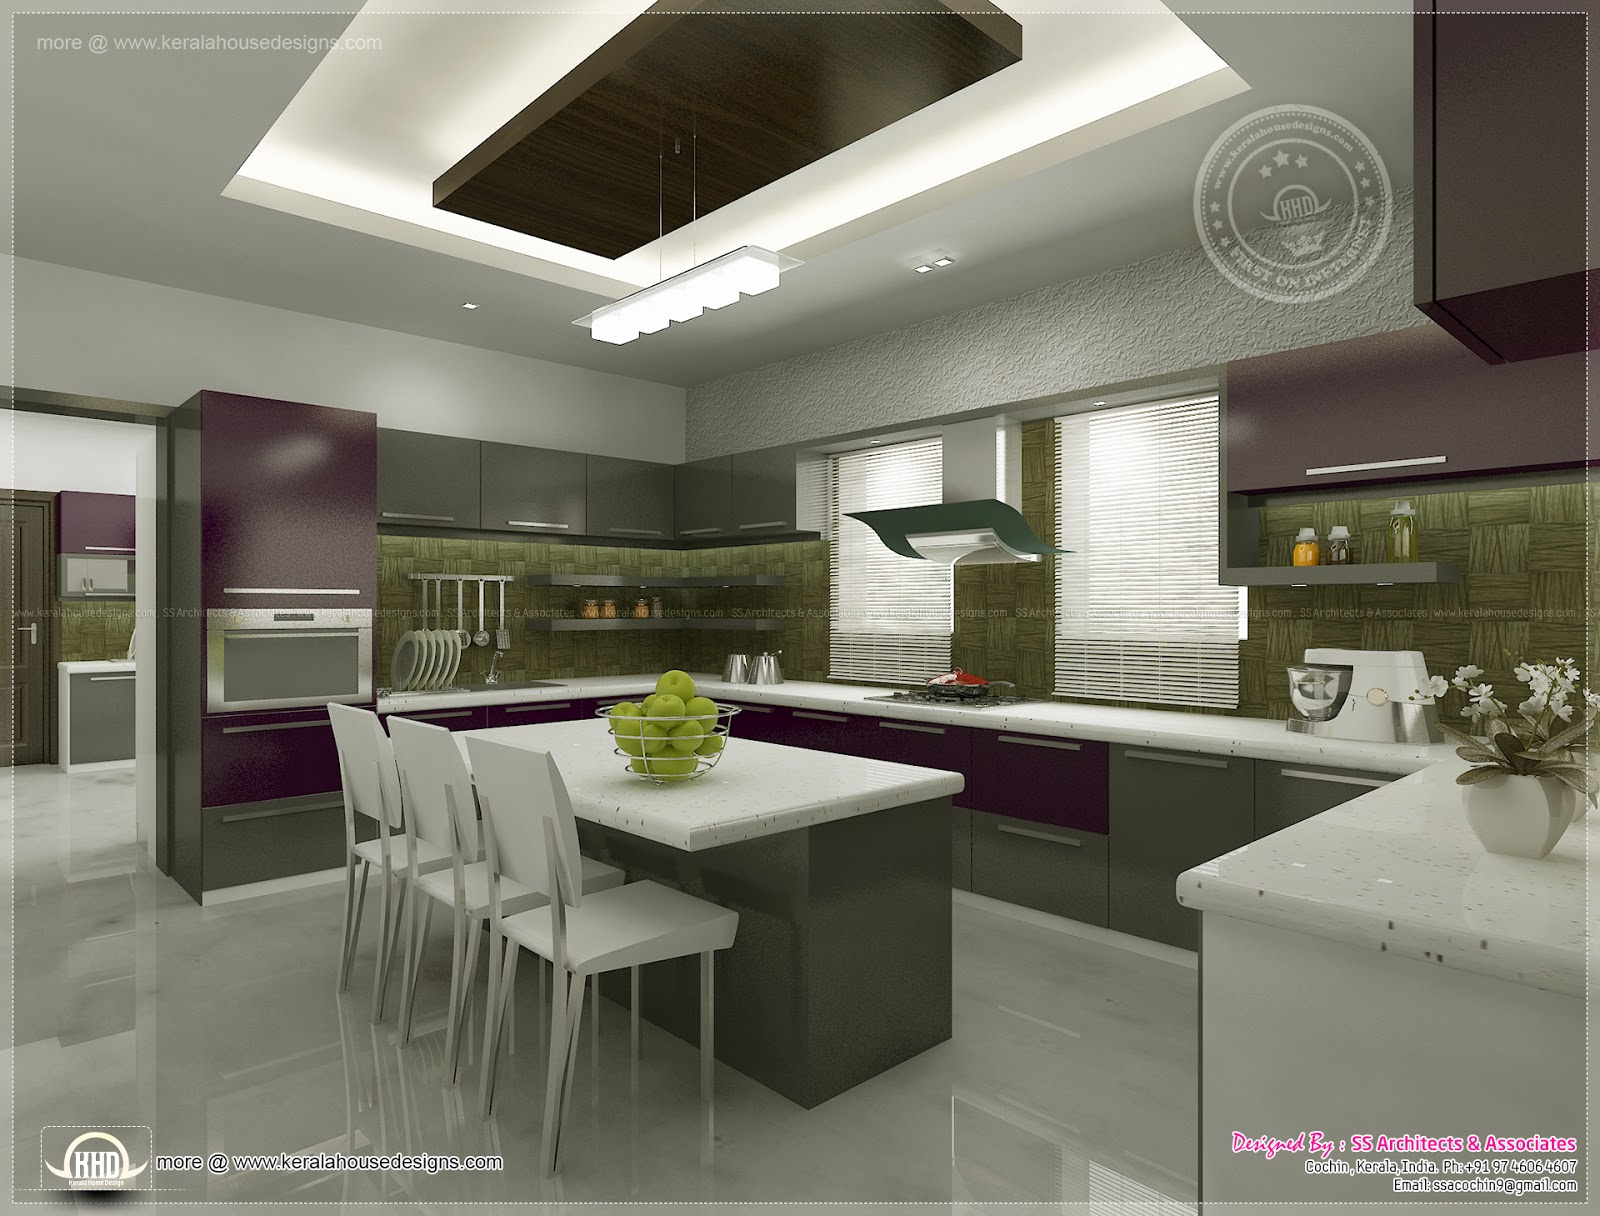 Kitchen interior views by ss architects cochin kerala for How to design house interior